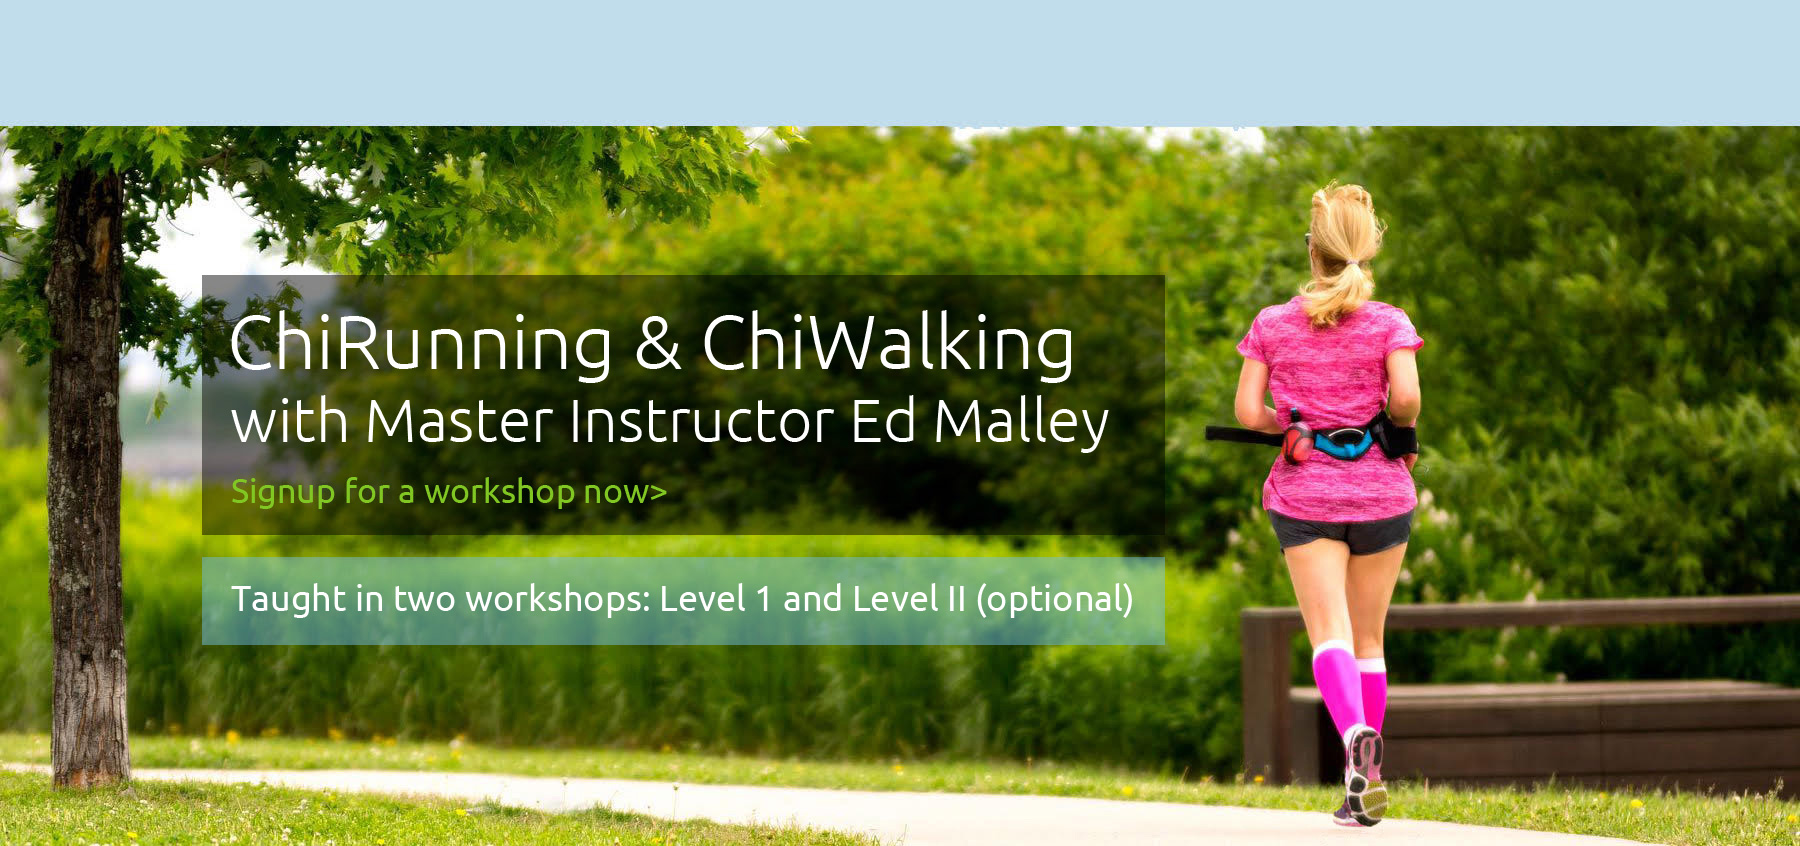 Learn ChiRunning and ChiWalking Workshops